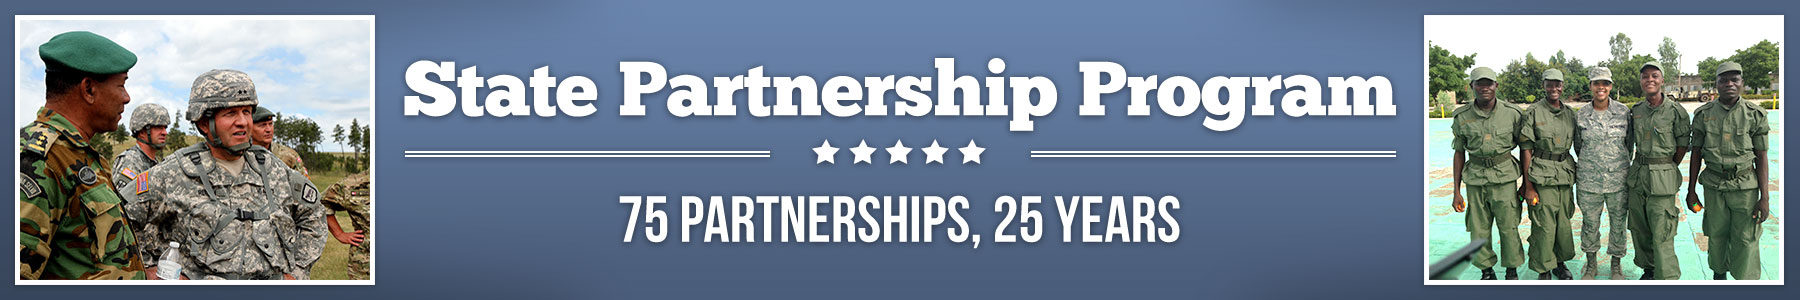 State Partnership Program